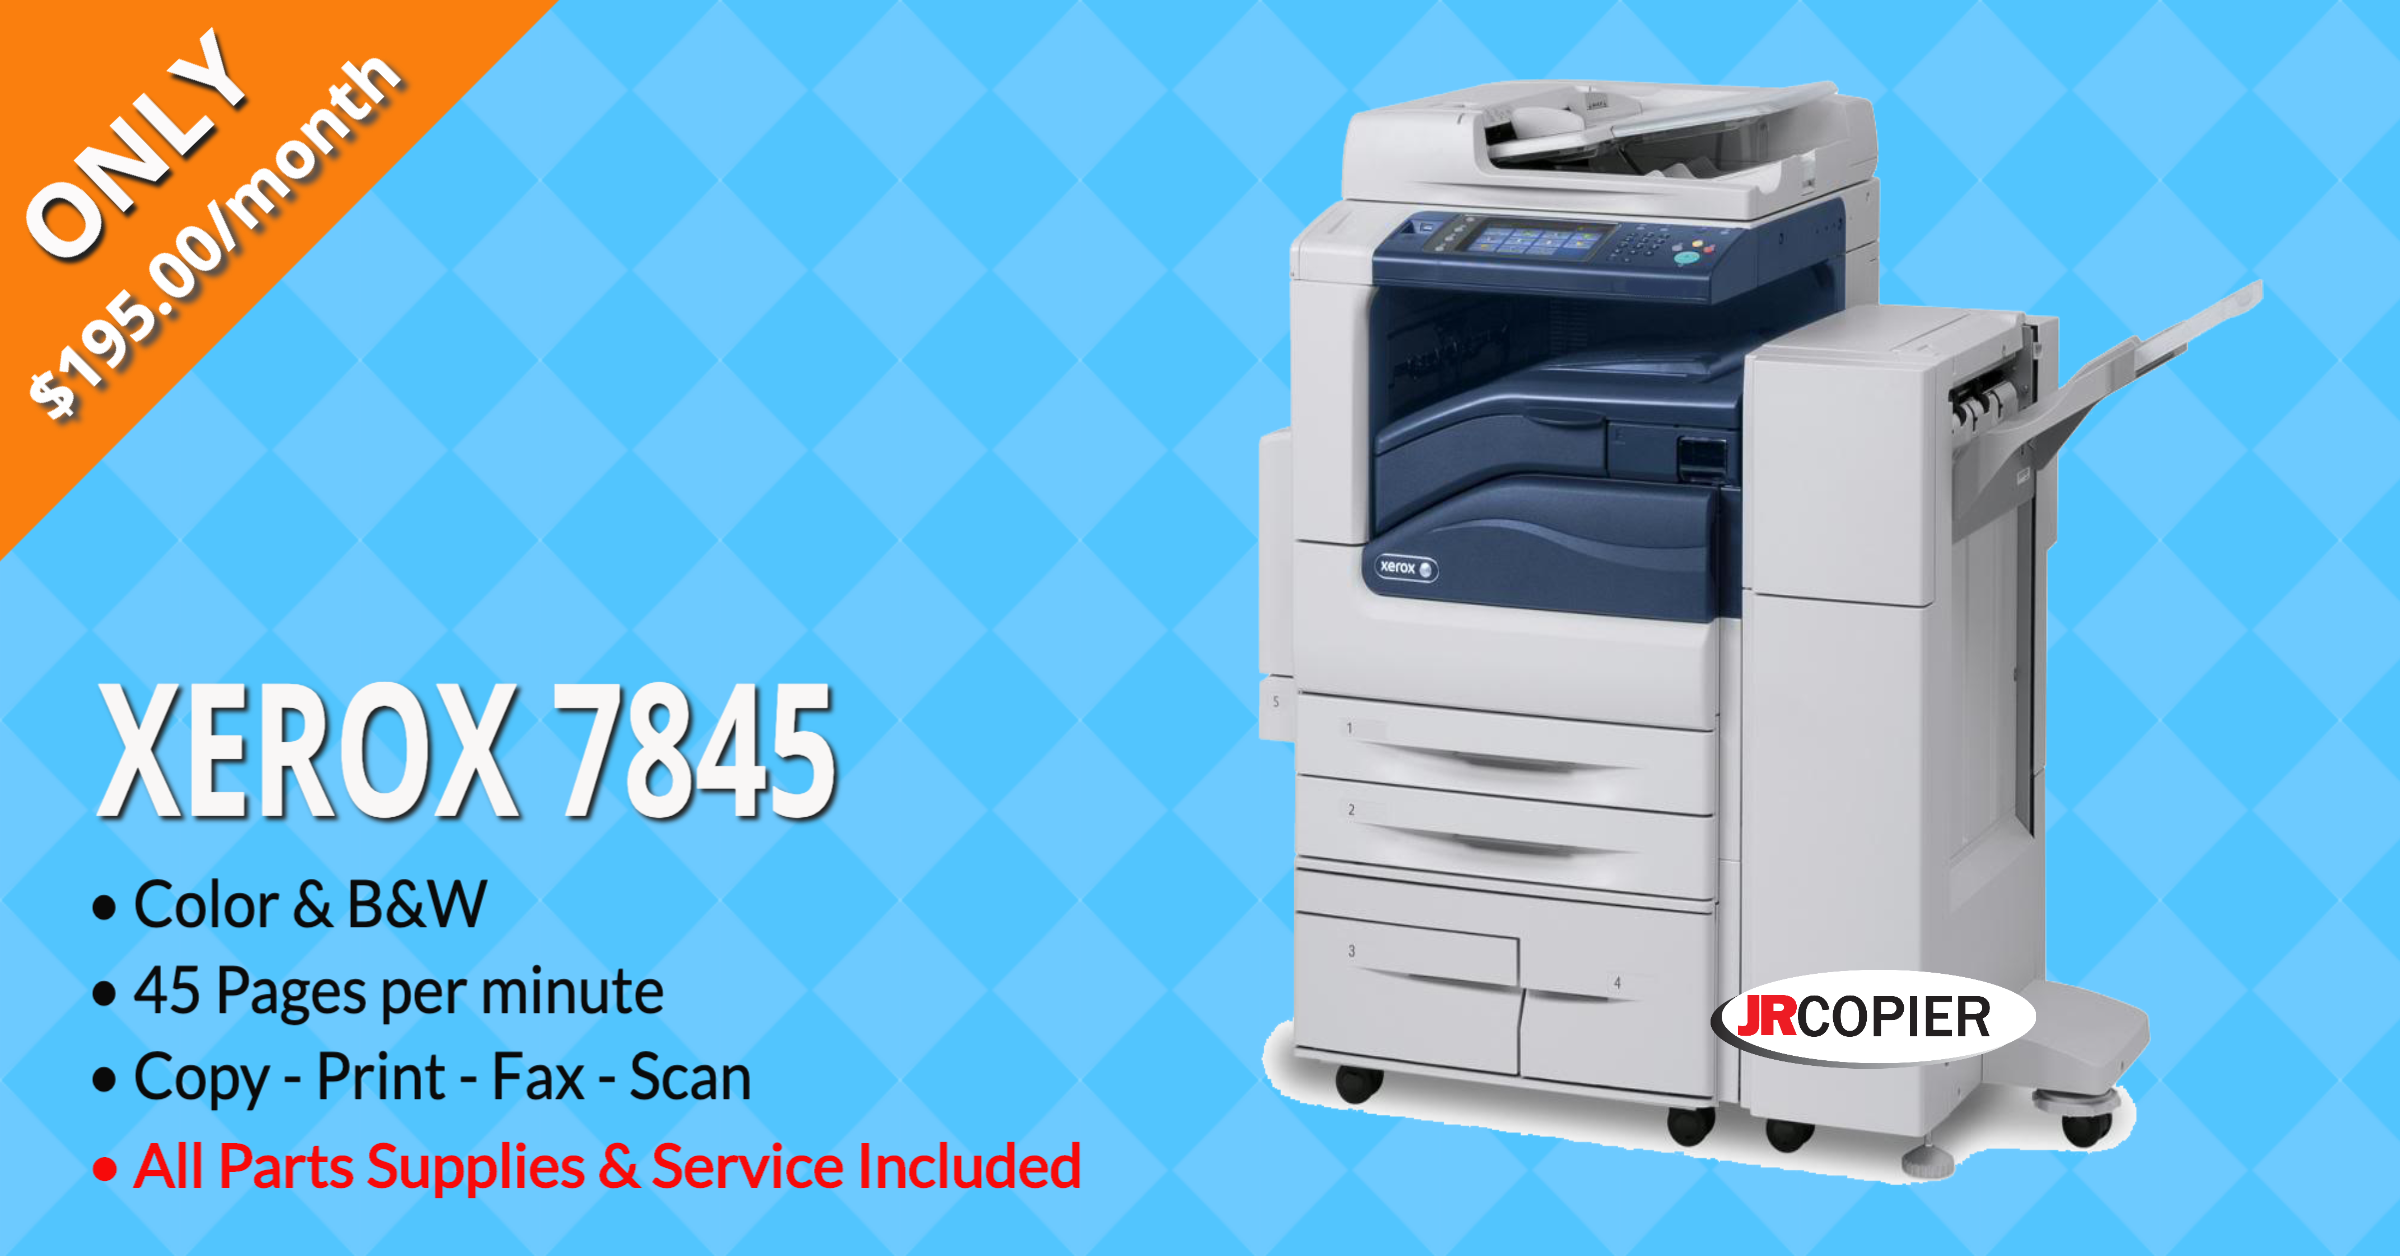 Laser Multifunction Printer 12401, 12404, 12419, 12440, 12443, 12484, 12491, 12561